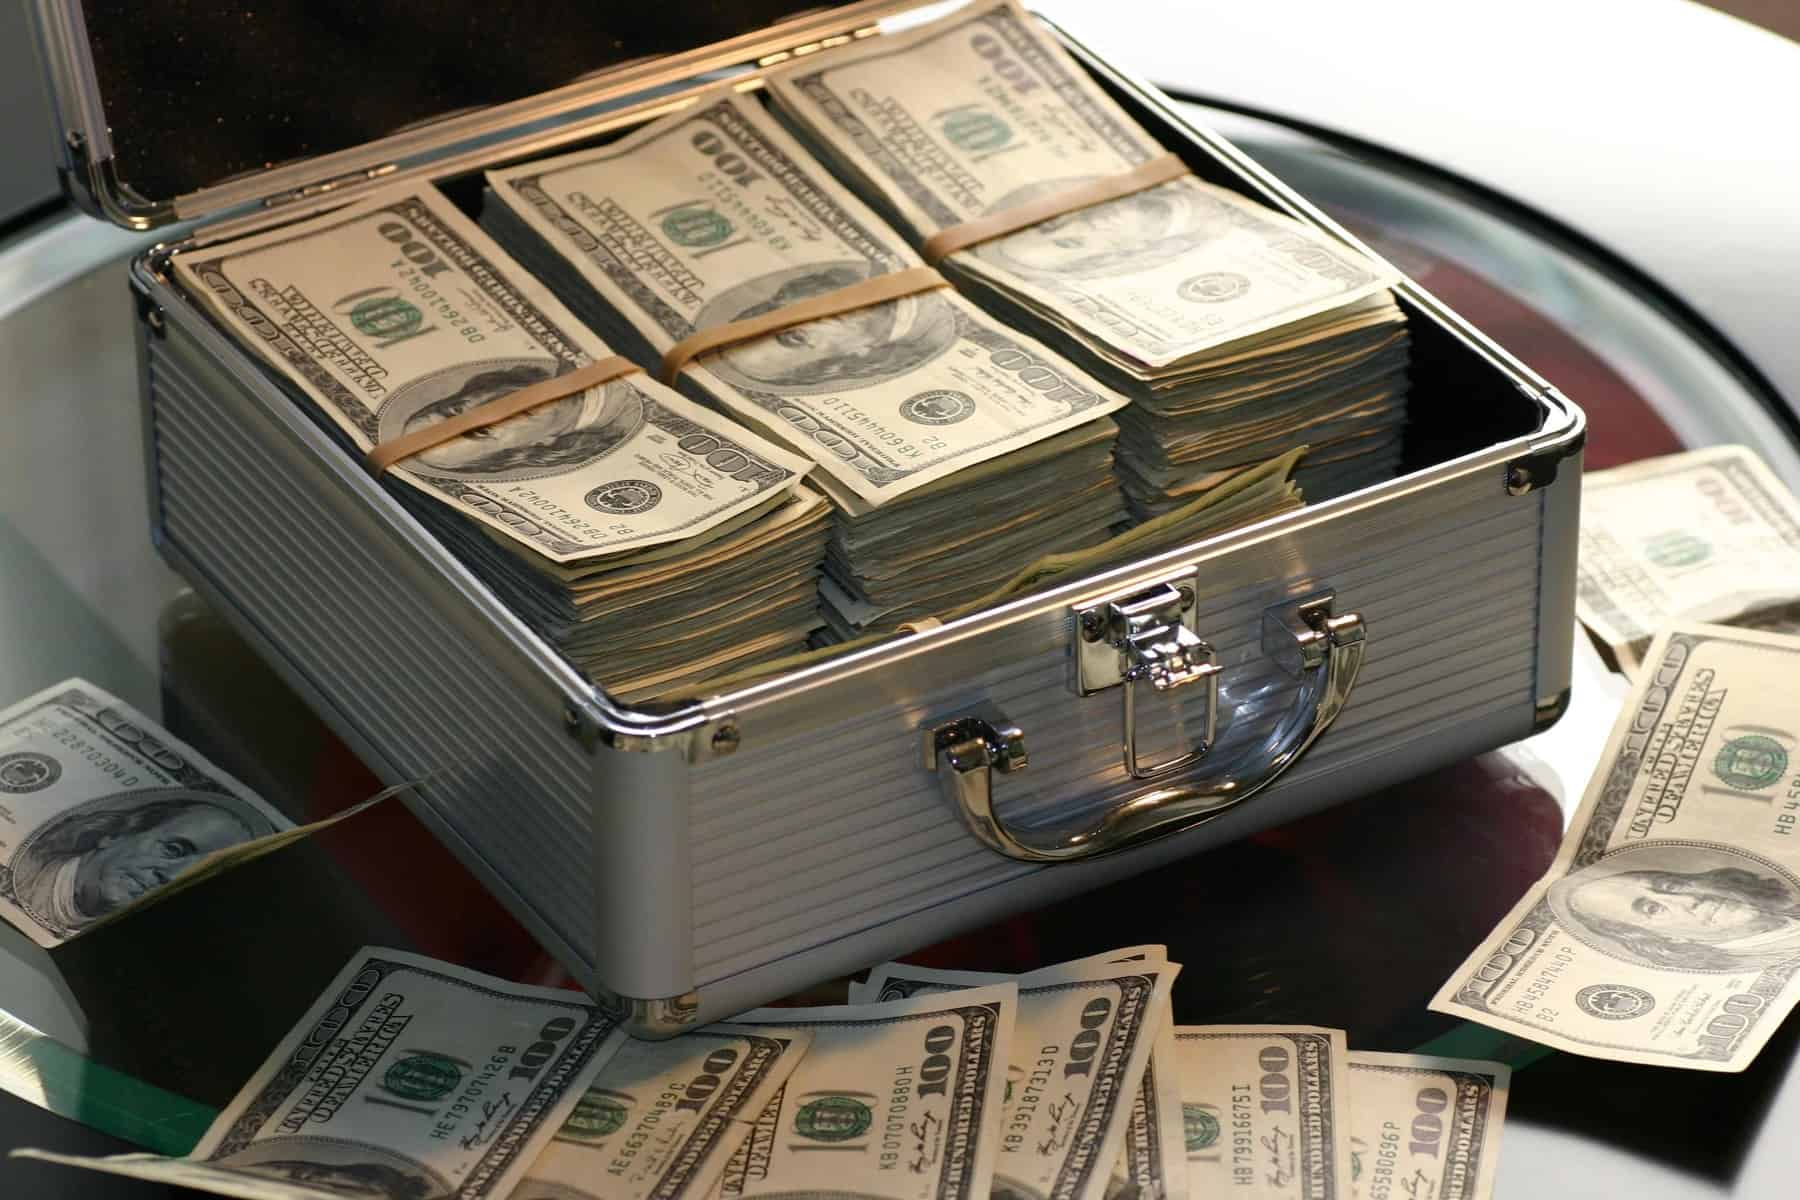 How to Make a Million Dollars Instantly?